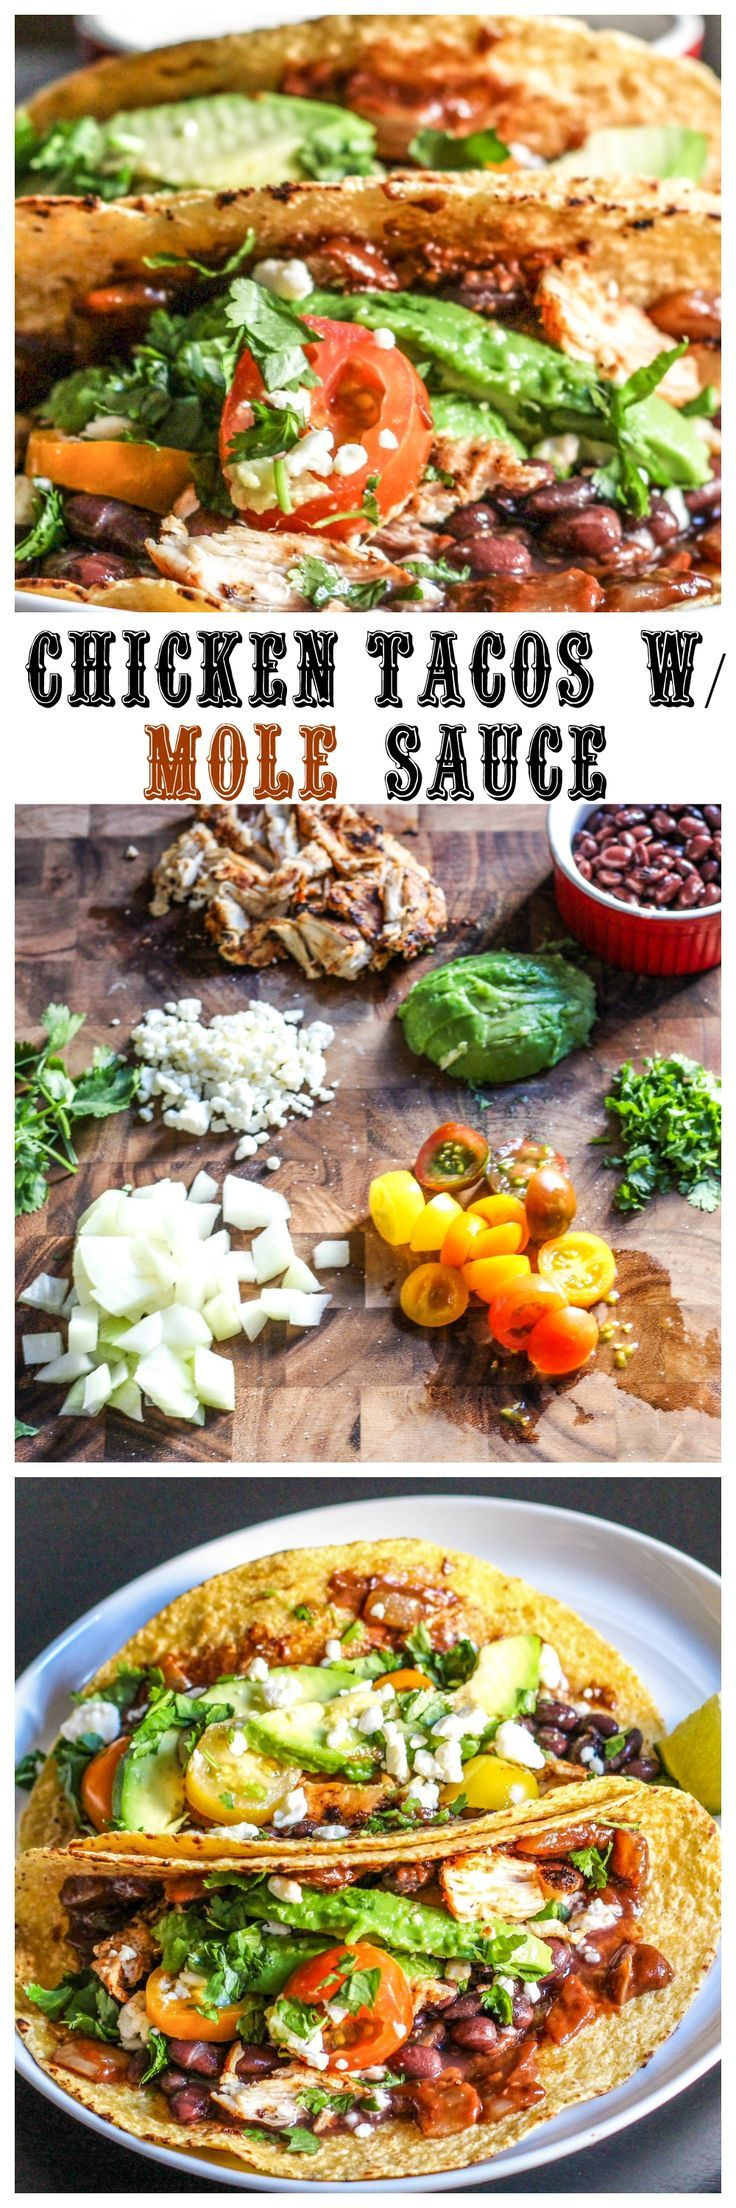 Celebrate Taco Tuesday with these Chicken Tacos with Mole Sauce!